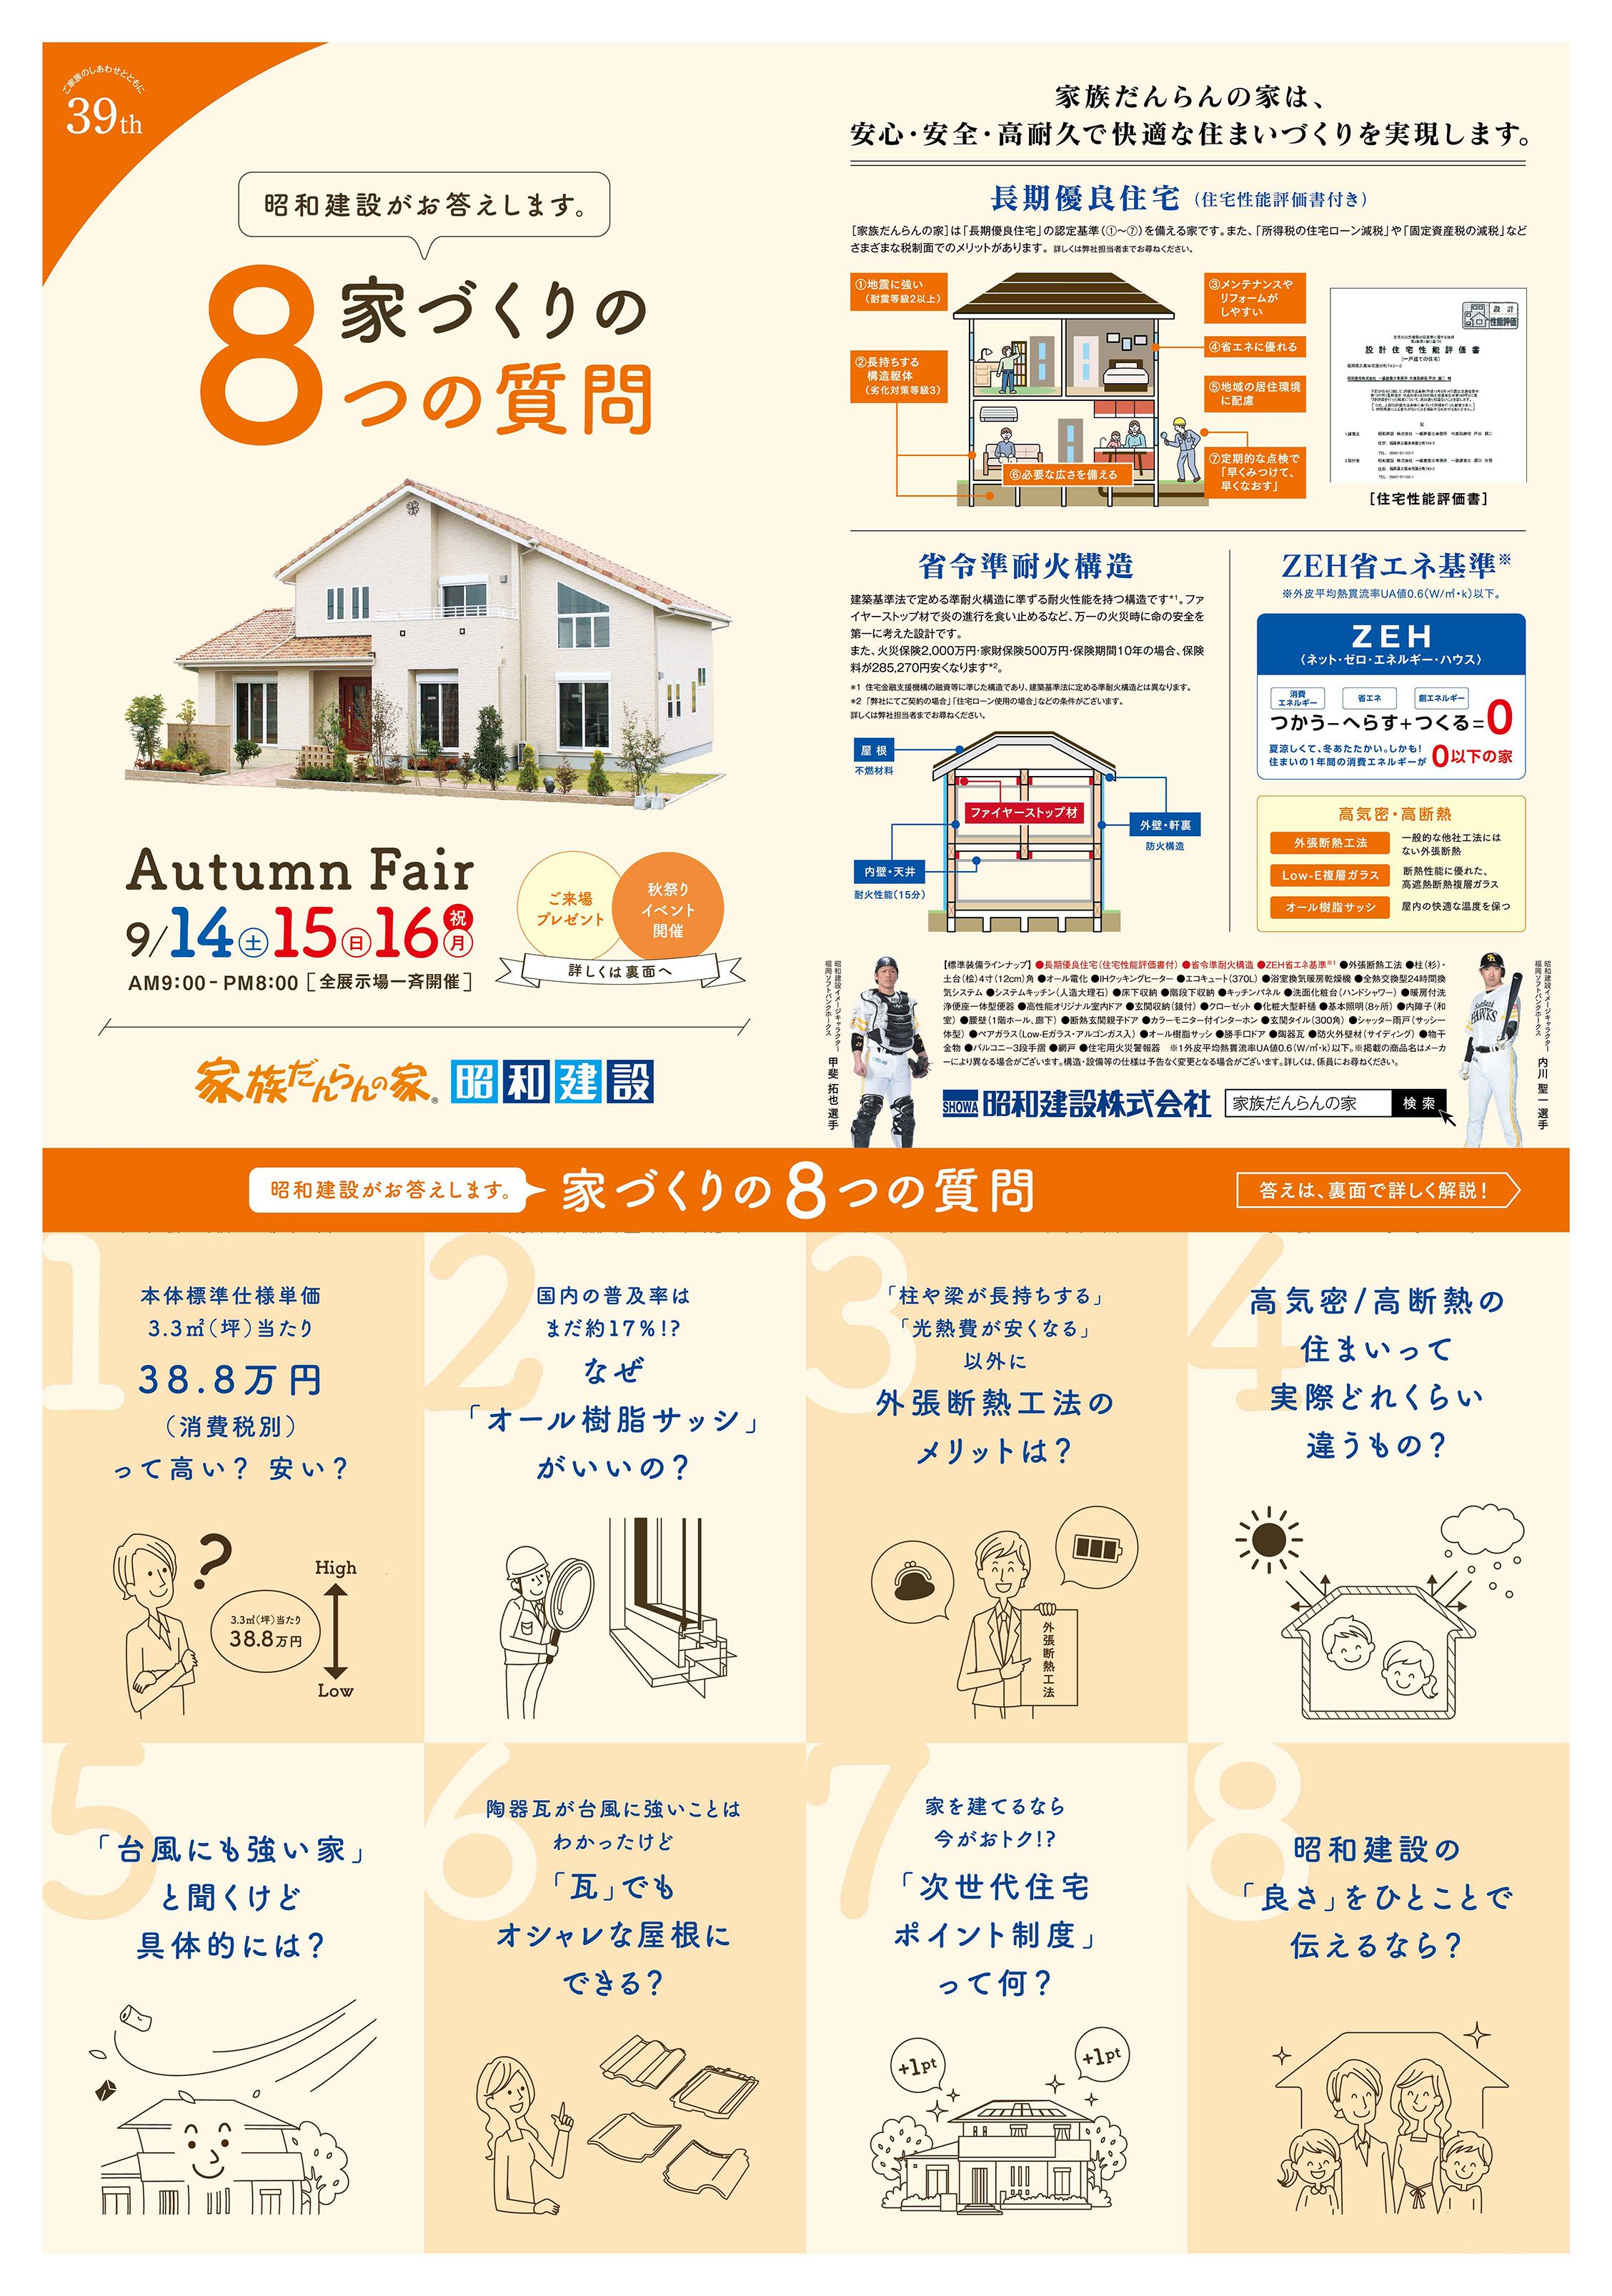 Google Image Result For Https Www Showacr Co Jp Wp Wp Content Uploads 2019 09 Autumna Jpg 2020 ちらし デザイン 折込チラシ デザイン